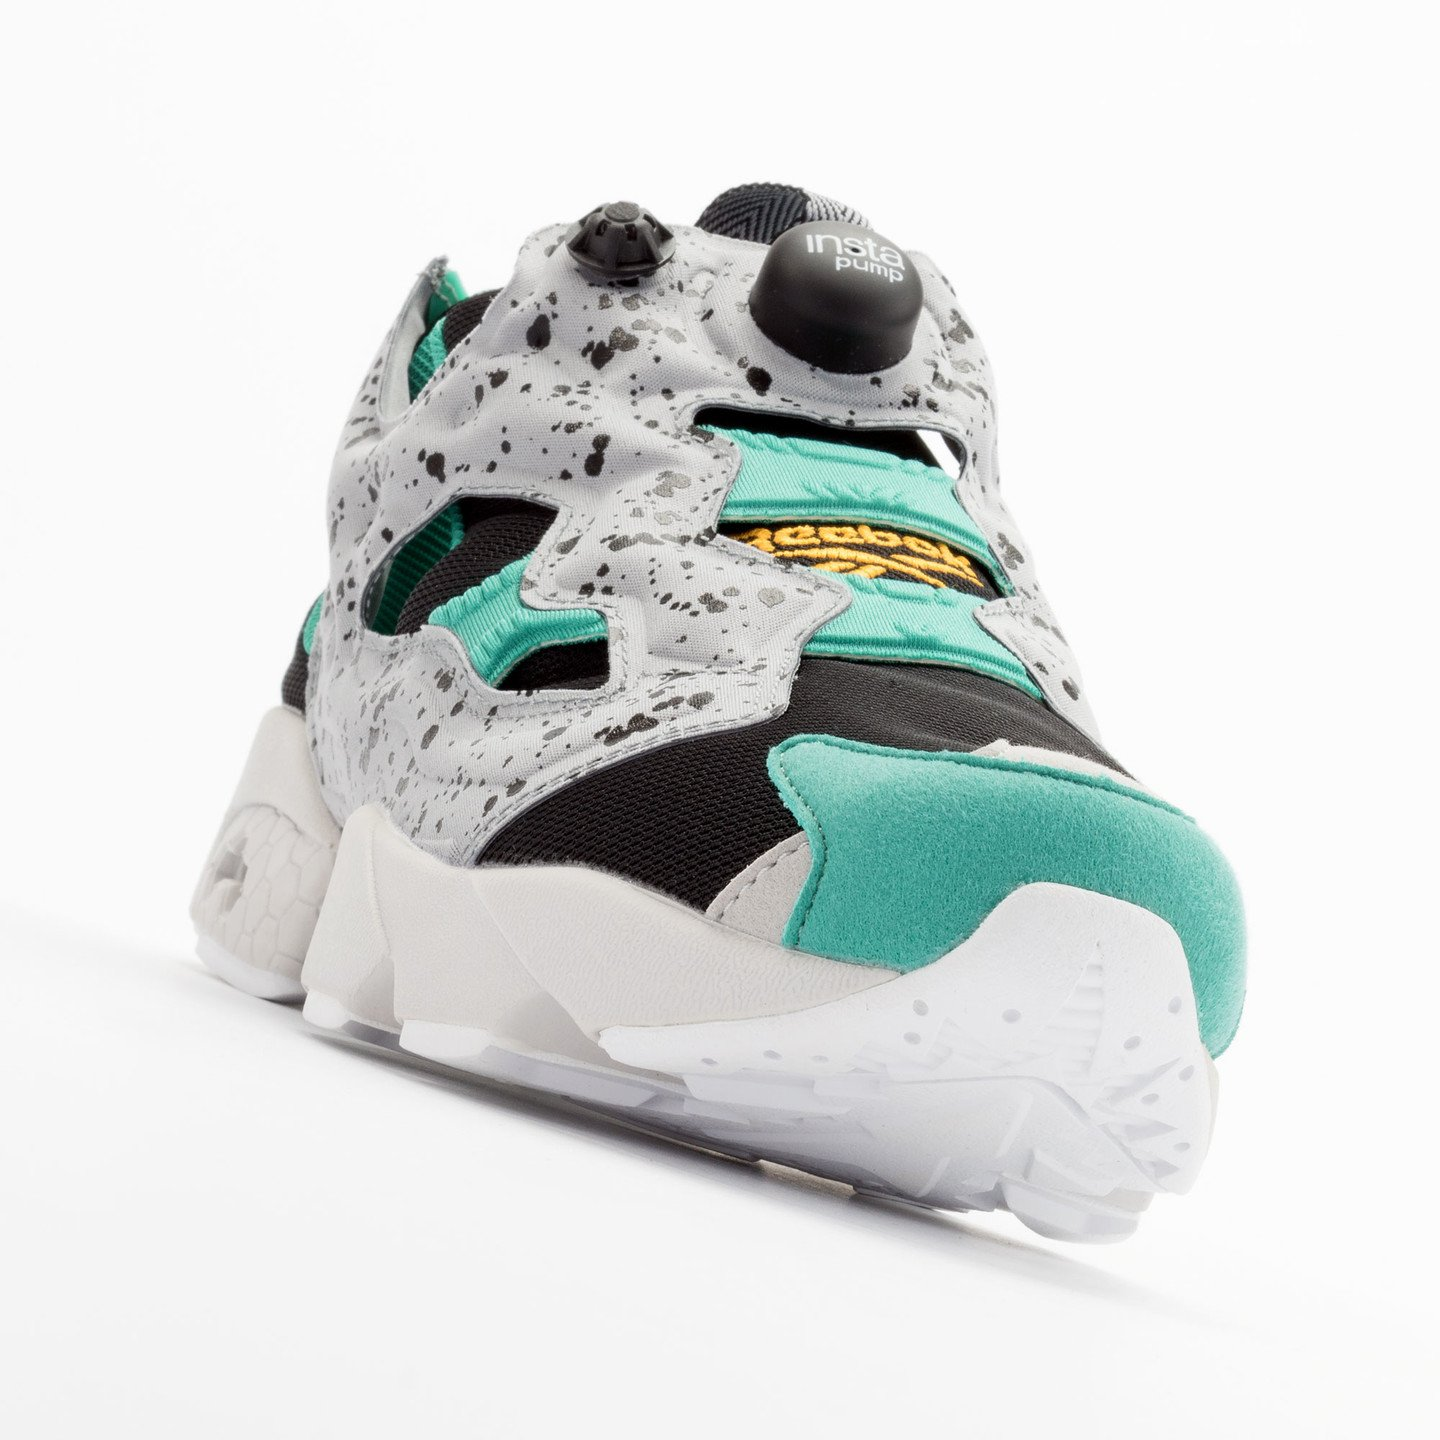 Reebok Instapump Fury SP Black / Grey / Green / Gold V66115-41